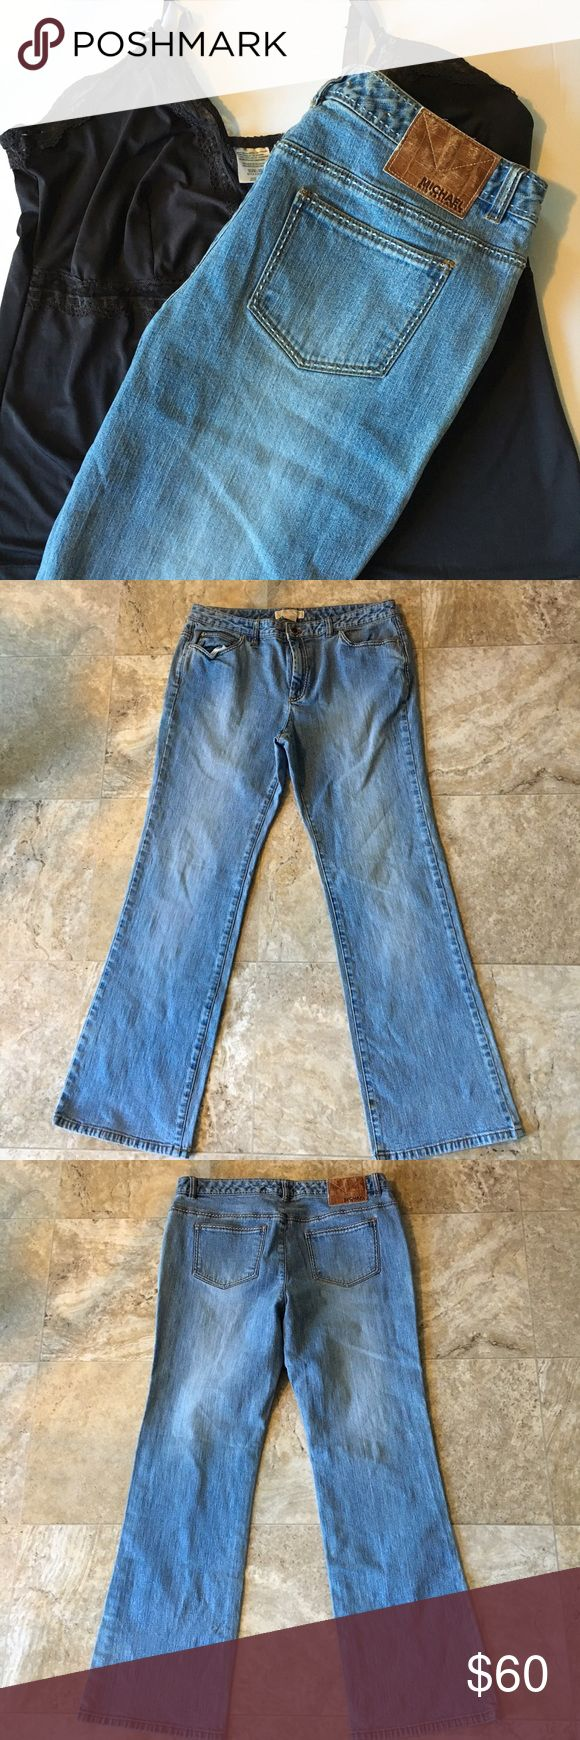 Michael Kors light blue jeans ✅offers welcome✅ 💖no trades💖 Very lightly worn and still in great condition besides a small stain at the bottom of the jeans that is shown in the last picture. Perfect to wear with a simple t-shirt or a dressy blouse. Feel free to ask for measurements Material: 99% cotton, 1% spandex Michael Kors Jeans